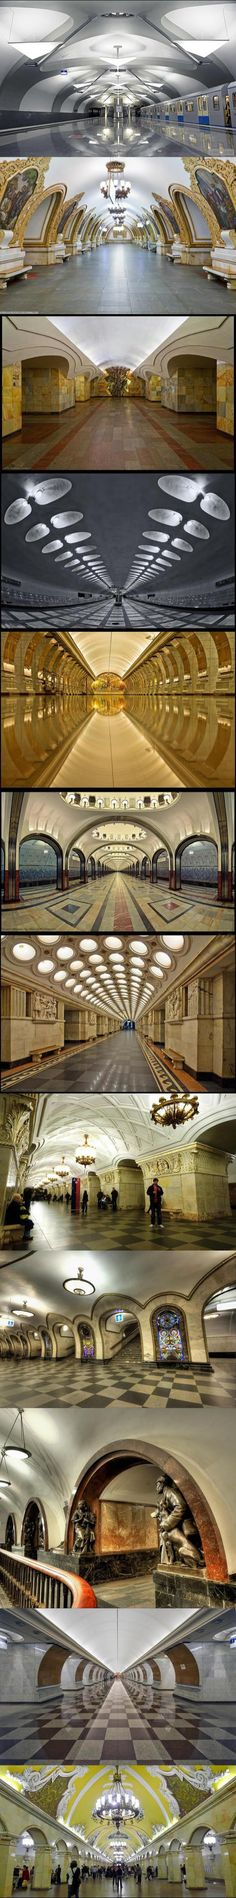 Wow! Why can't the U.S. put this much effort in making out country beautiful! These are Moscow metro stations, a public service building, and they look fantastic!